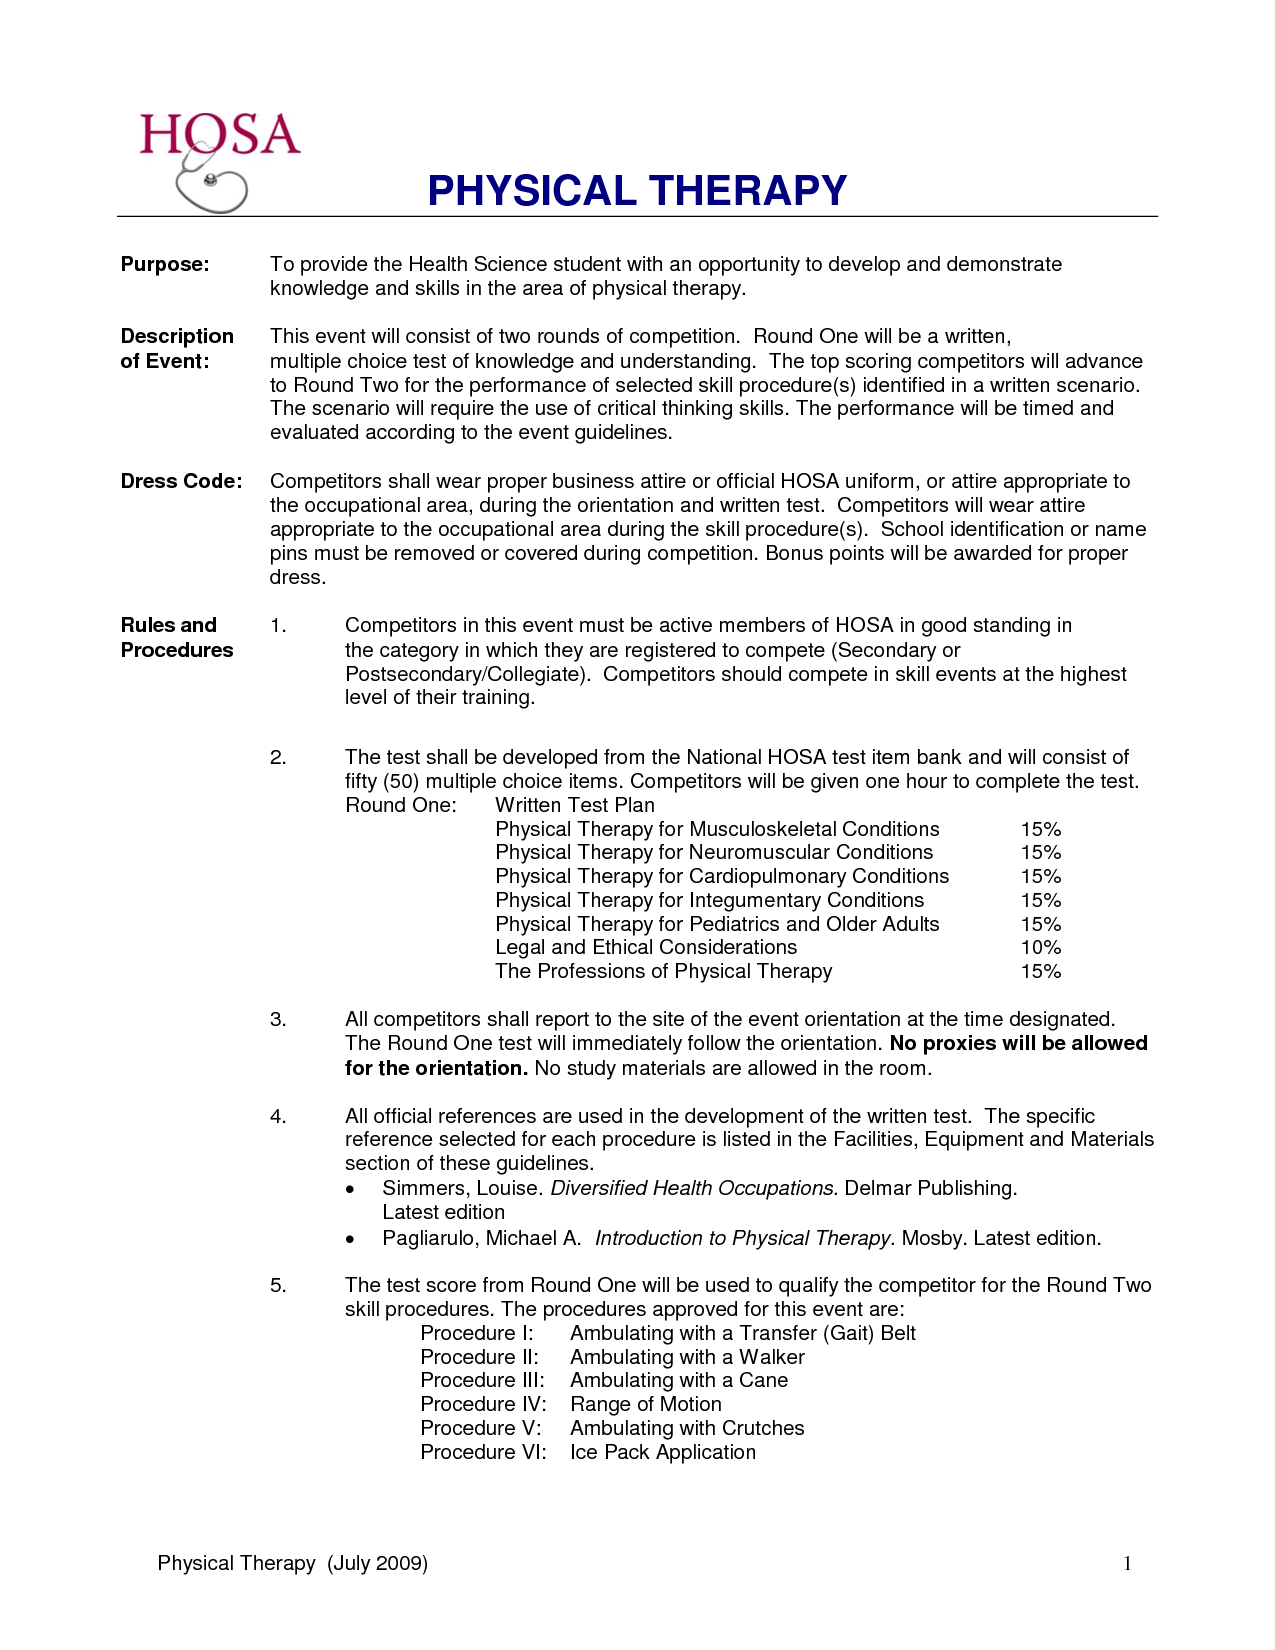 Cover Letter For Physical Therapy Cover Letter Massage Therapist